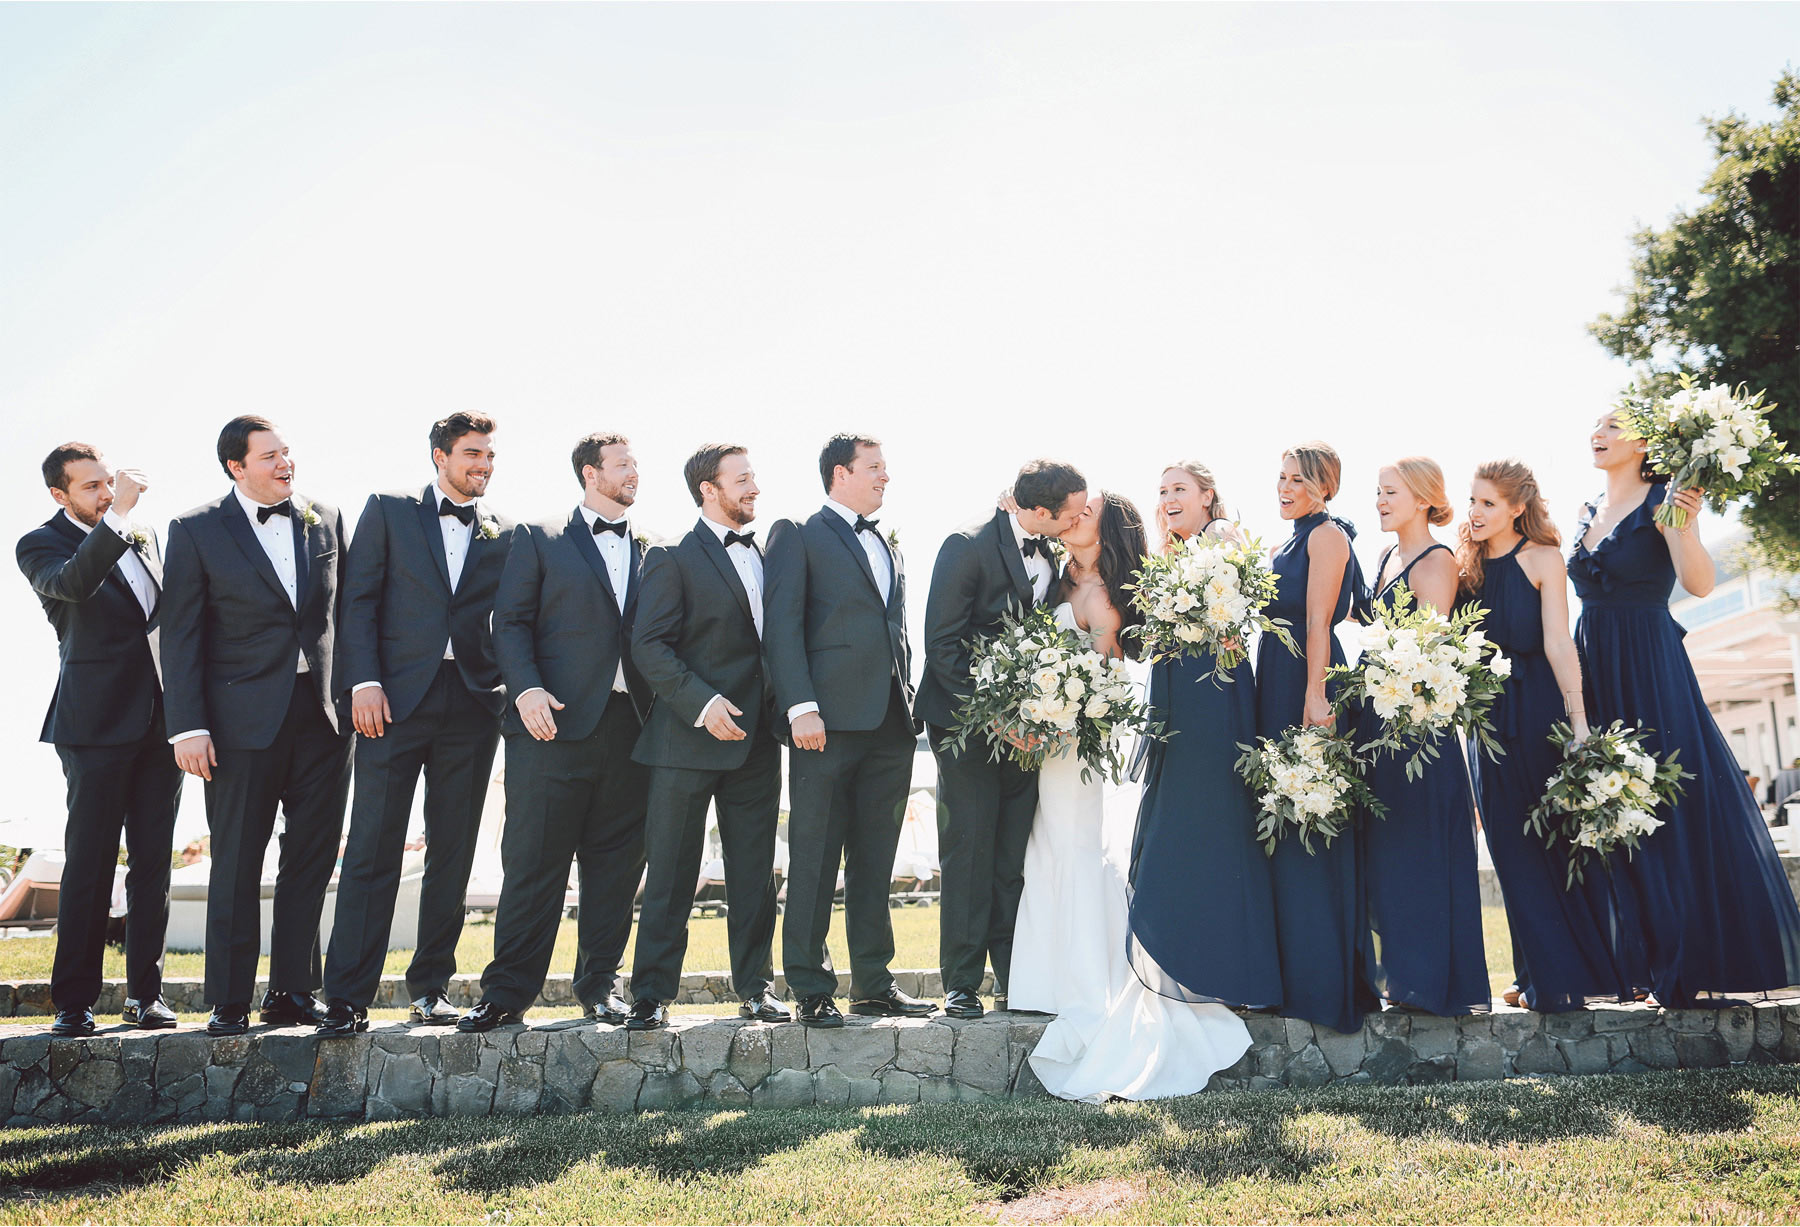 12-Napa-California-Wedding-Photographer-by-Andrew-Vick-Photography-Spring-Destination-Carneros-Resort-and-Spa-Bride-Groom-Bridesmaids-Groomsmen-Bridal-Party-Flowers-Kiss-Vintage-Alex-and-Roger.jpg